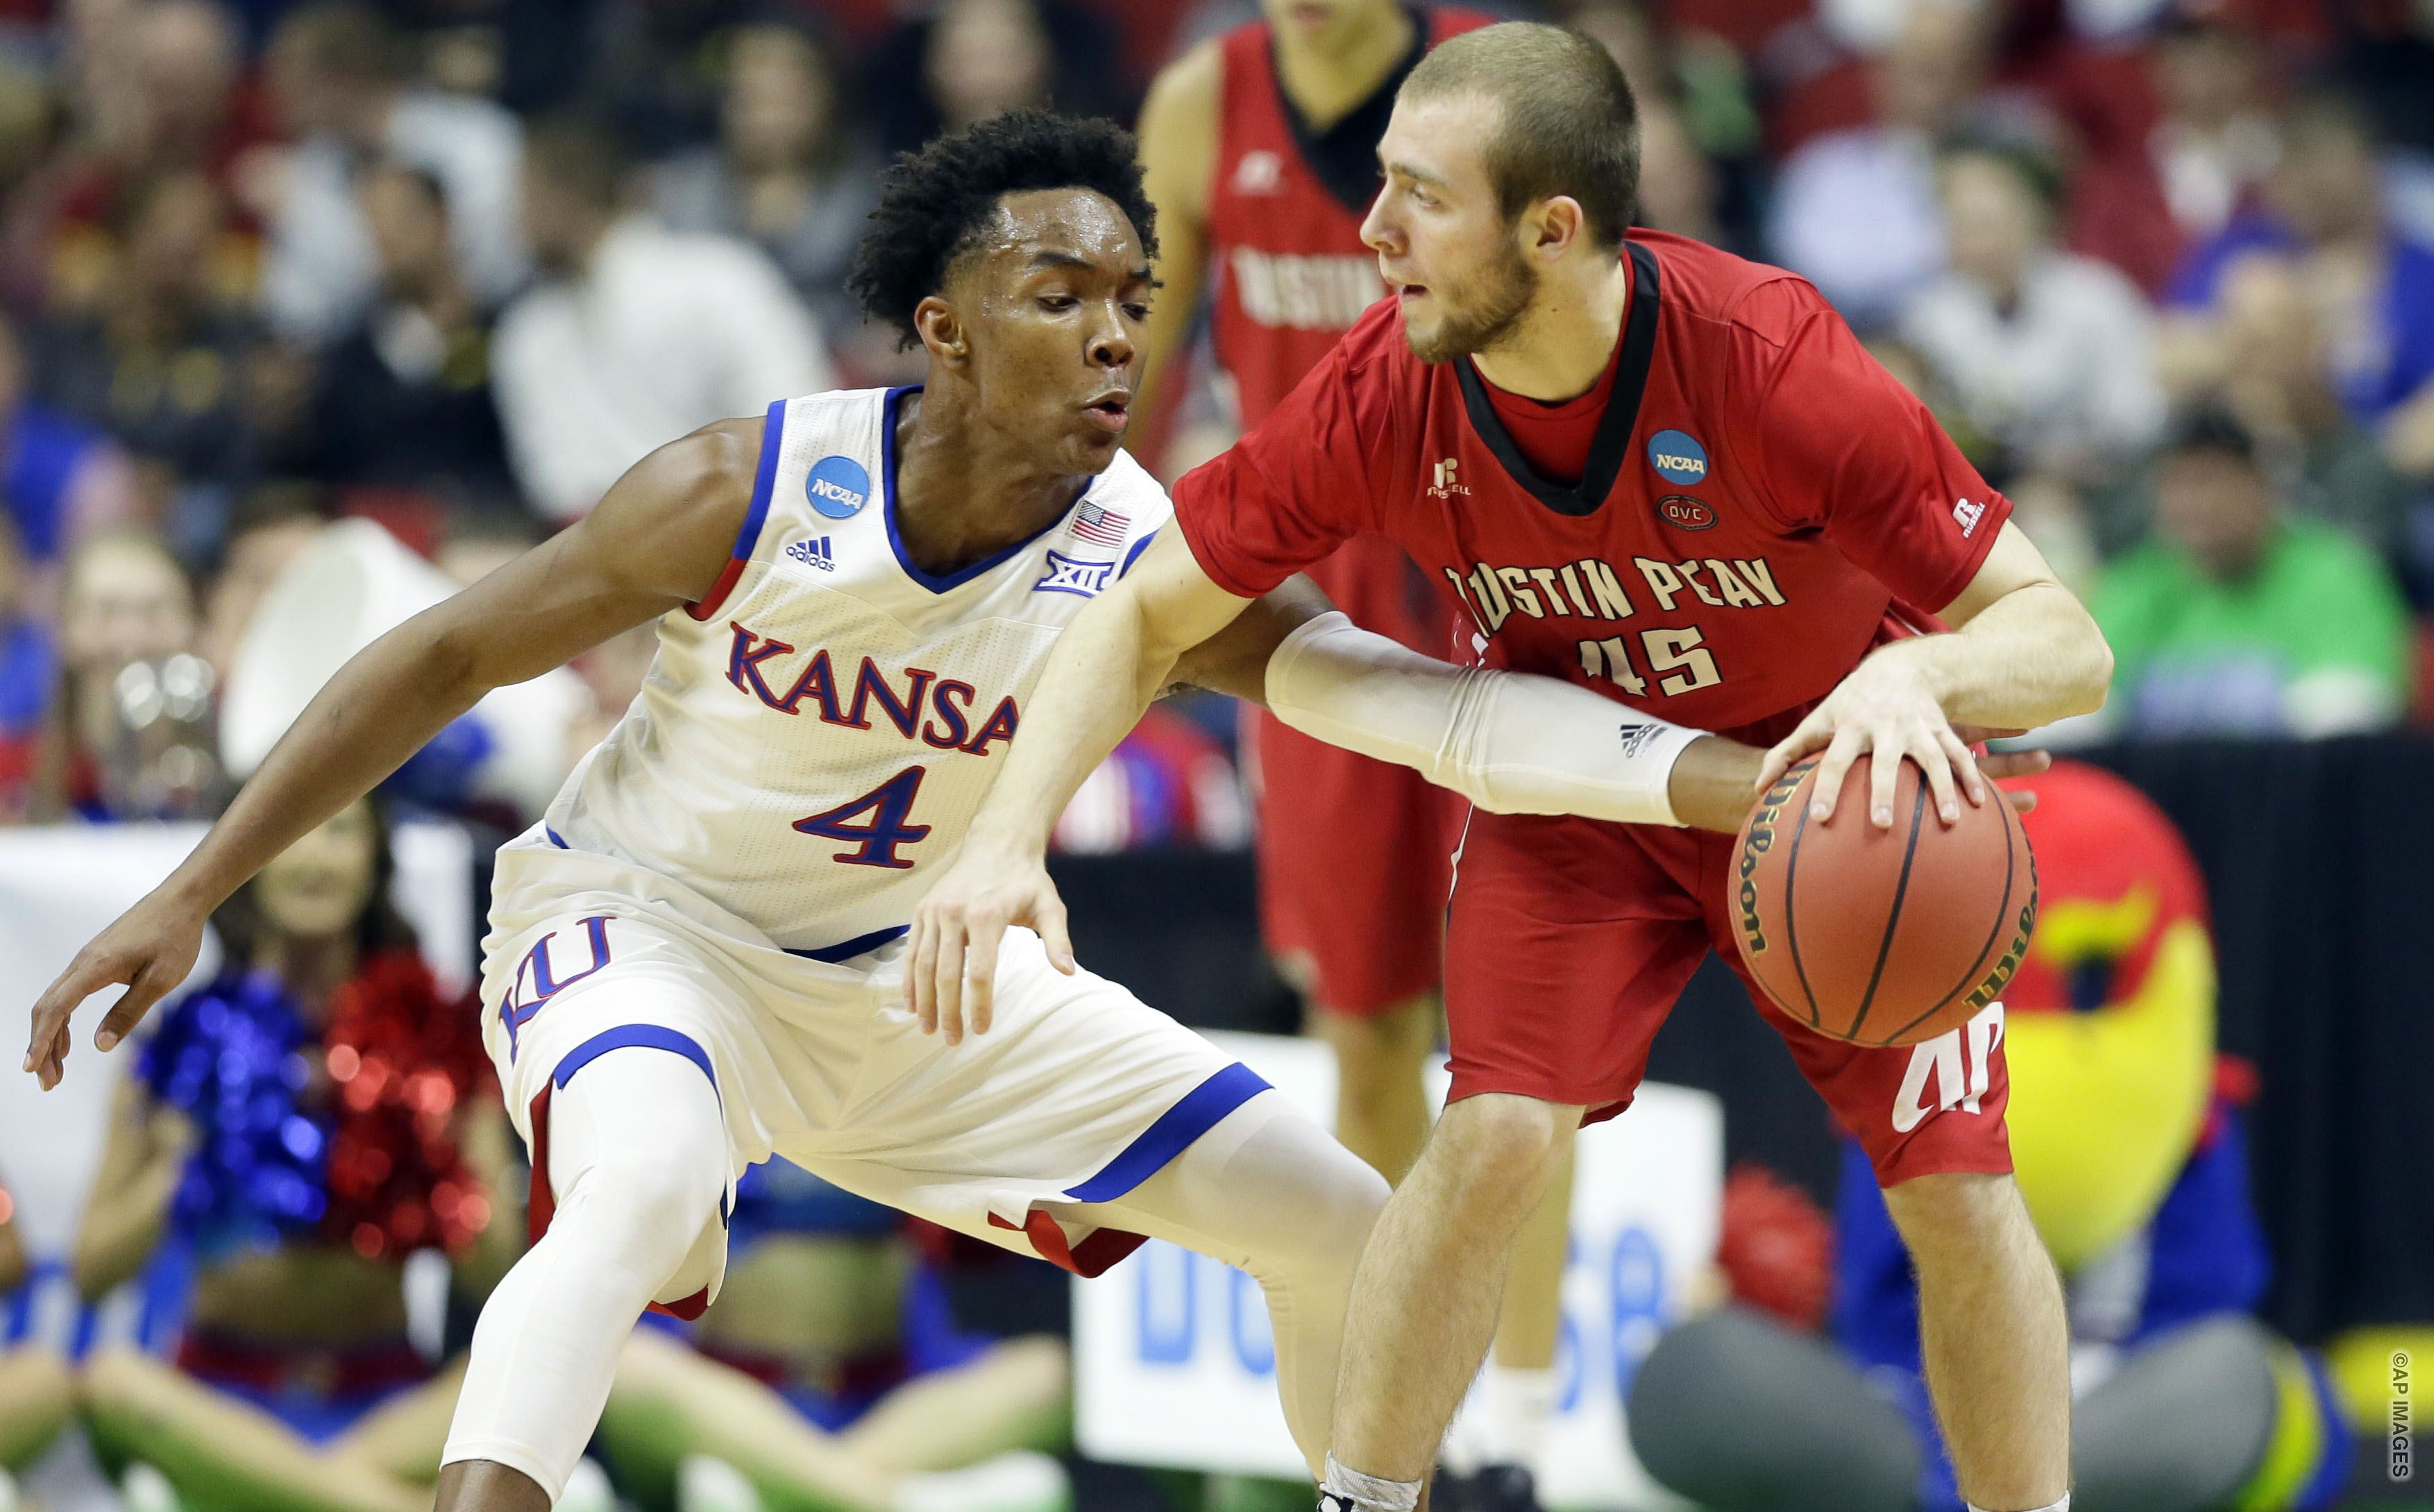 Kansas guard Devonte' Graham, left, tries to steal the ball from Austin Peay guard Zach Glotta during the first half of a first-round men's college basketball game in the NCAA Tournament, Thursday, March 17, 2016, in Des Moines, Iowa. (AP Photo/Charlie Neibergall)